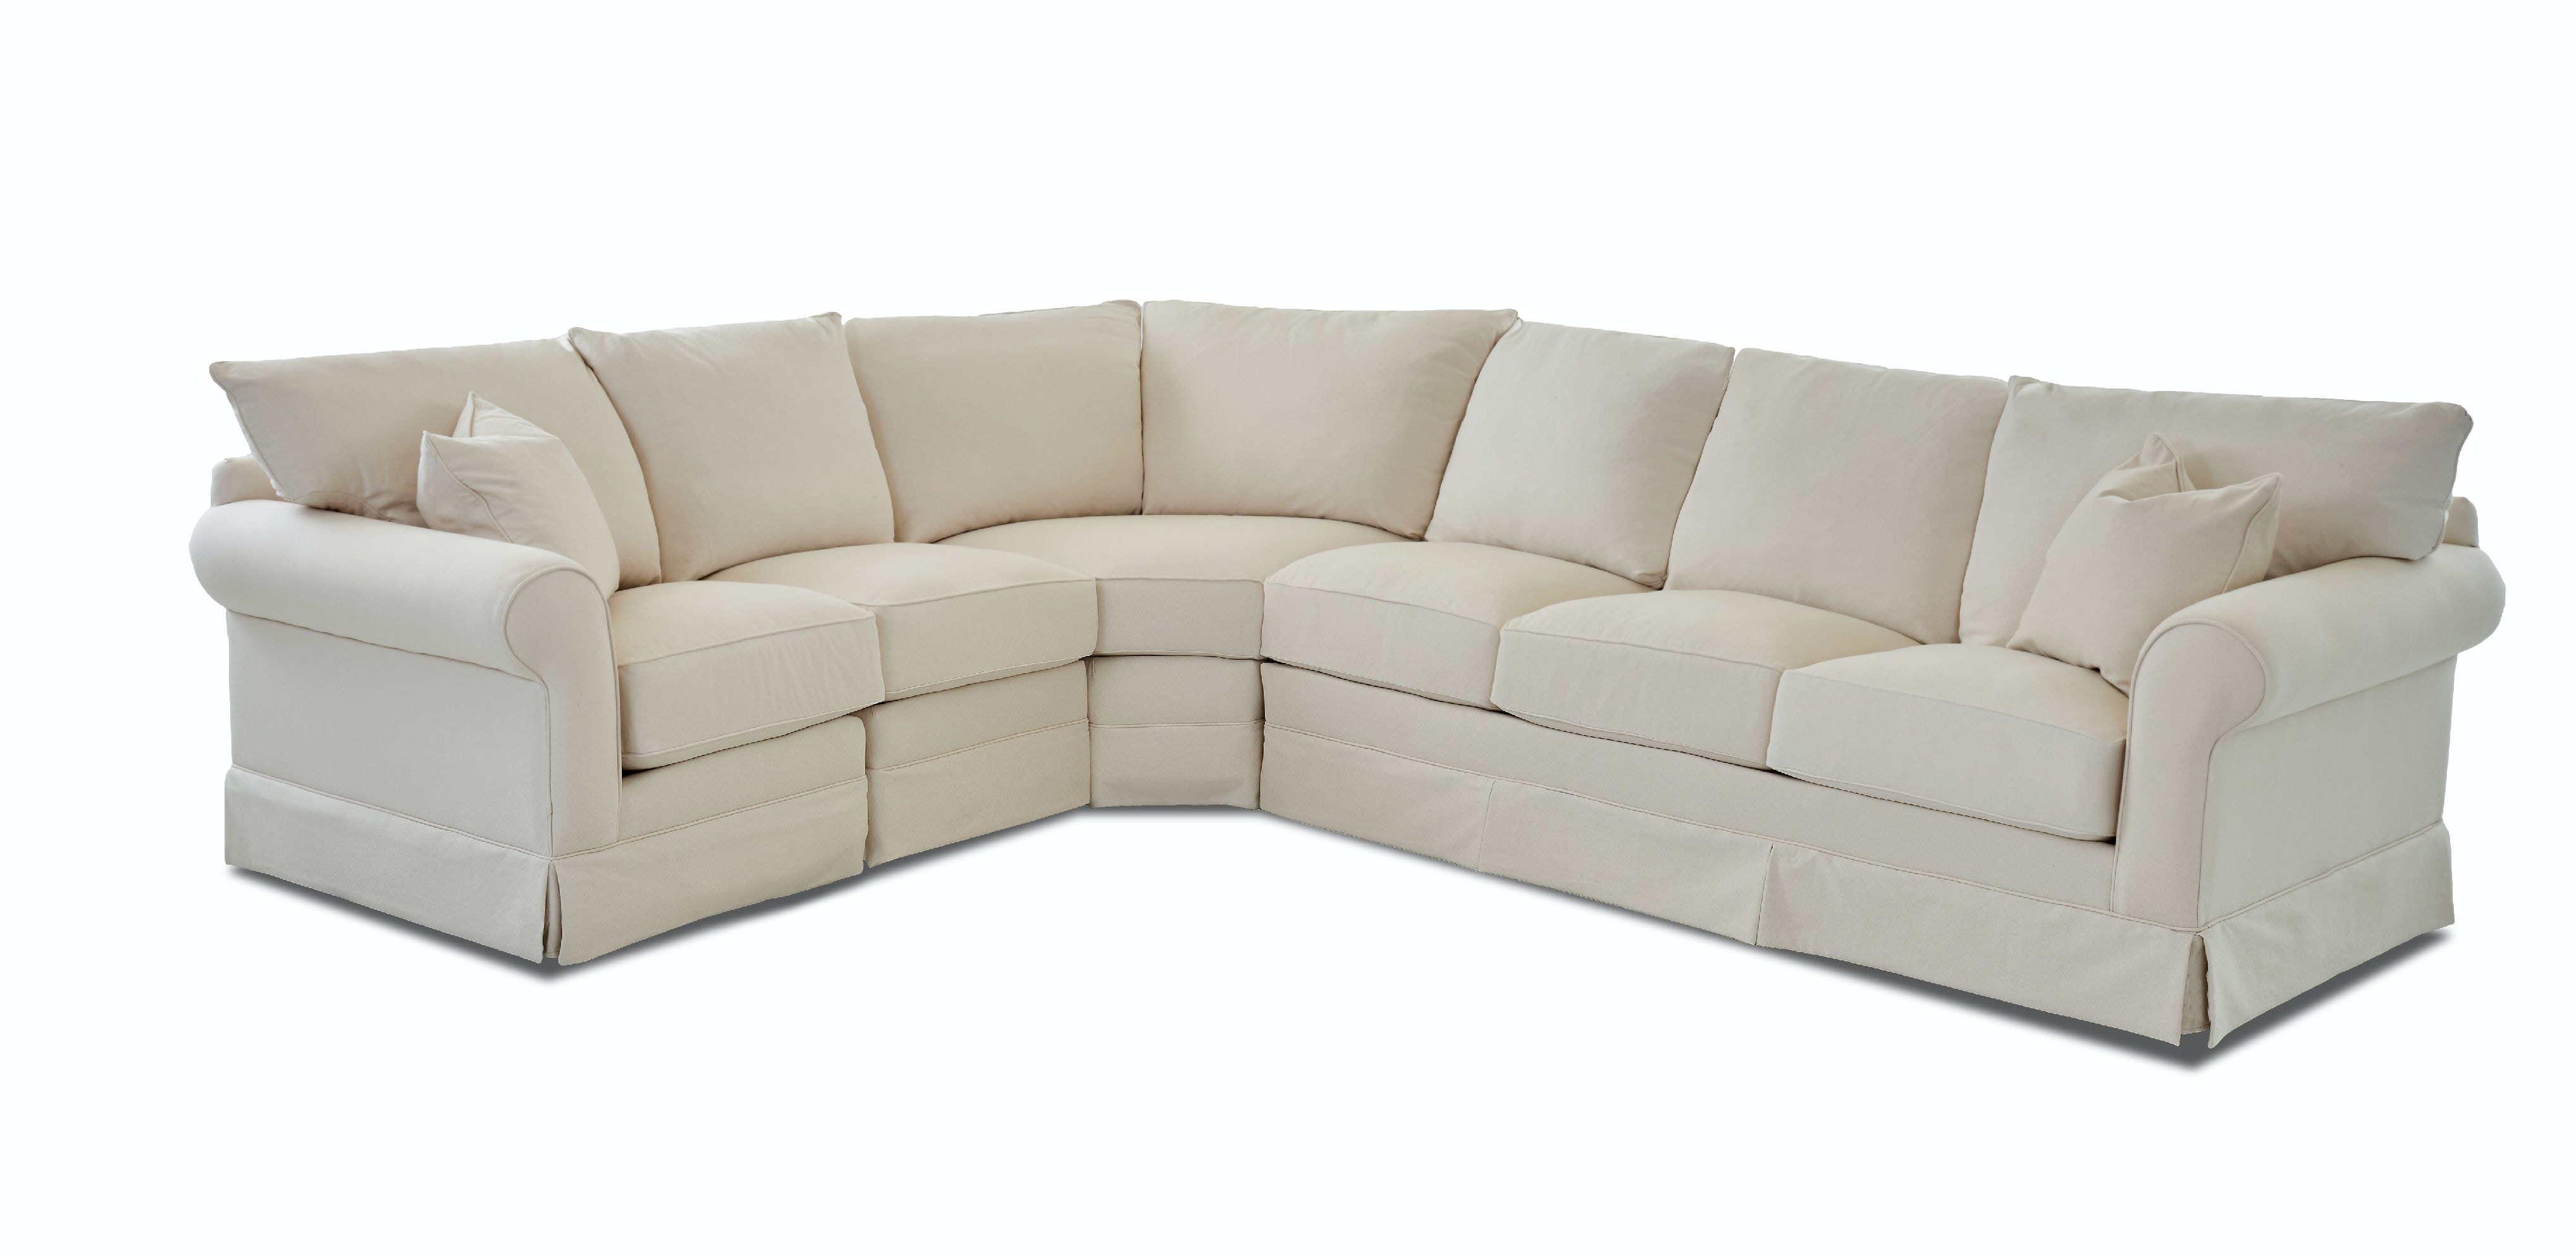 Klaussner Jenny Sectional D16700 SECT